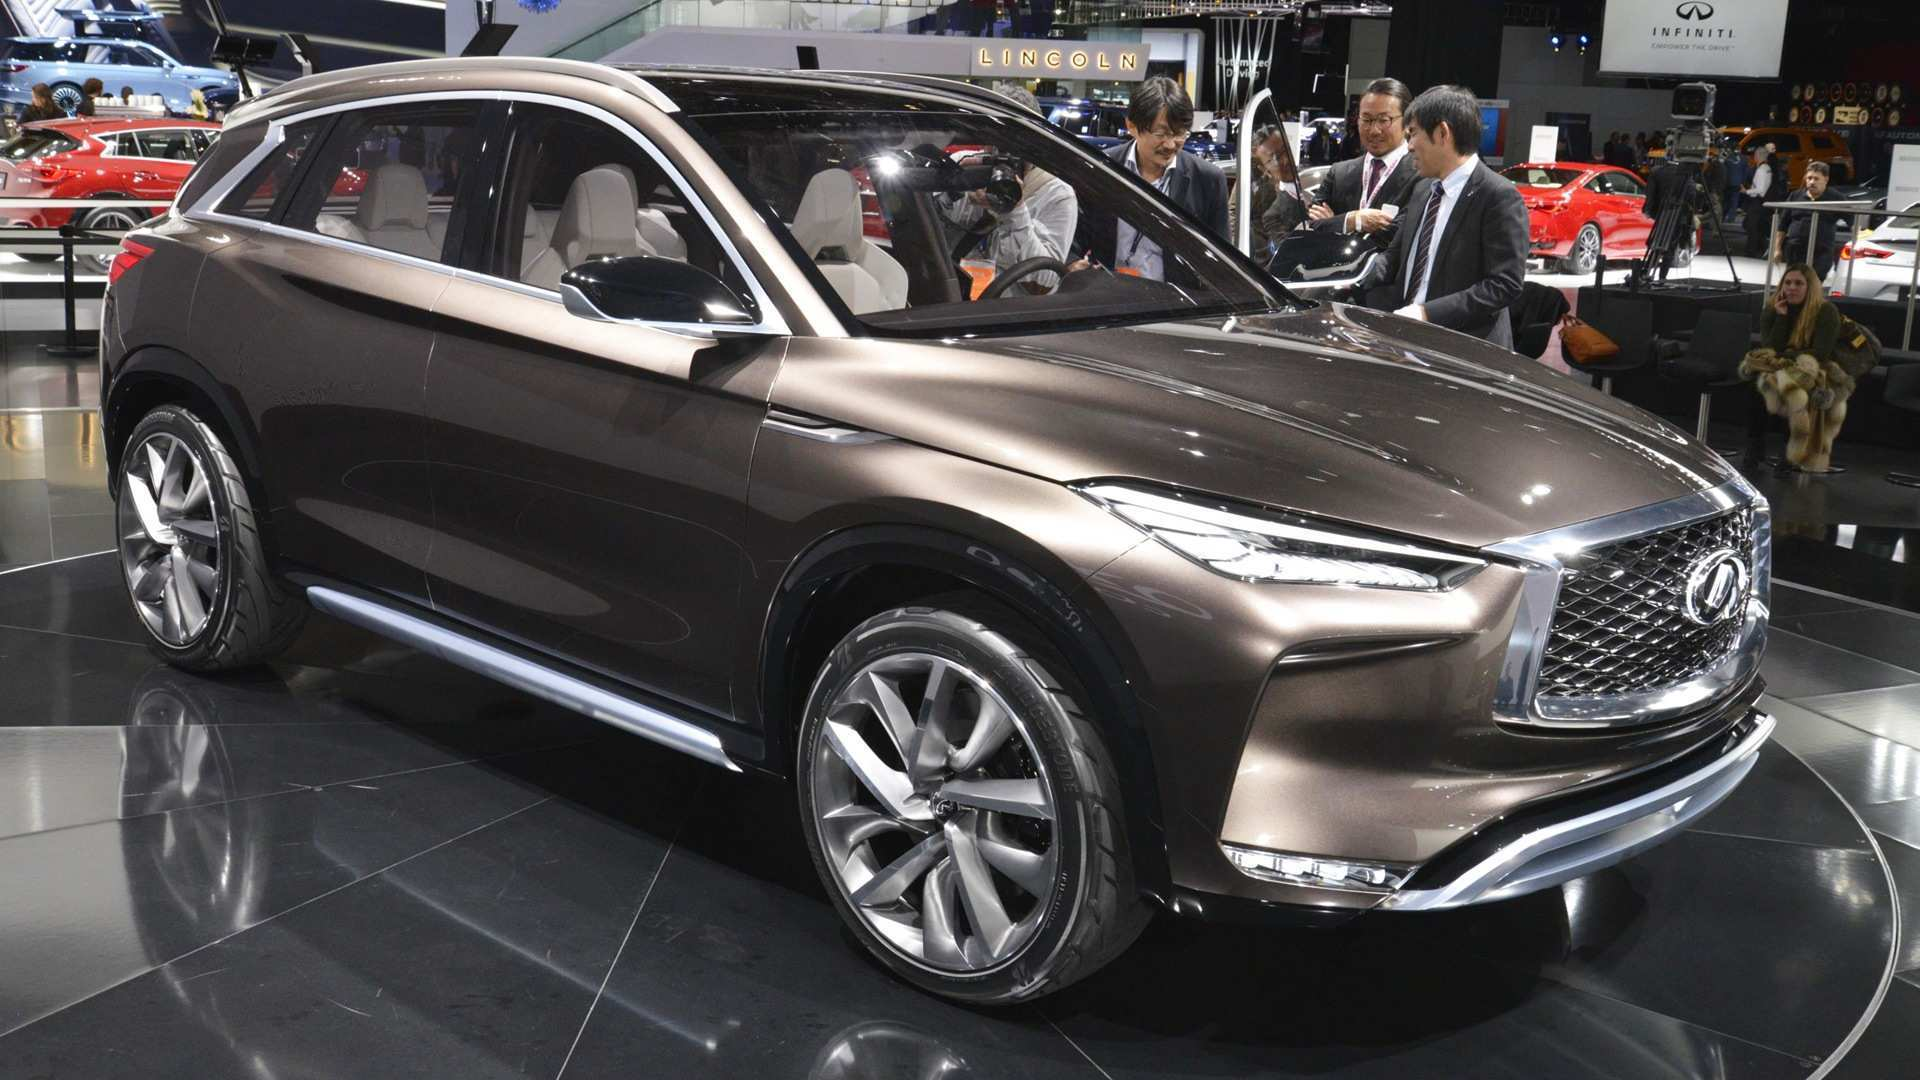 60 Best 2020 Infiniti Qx60 Spy Photos Release